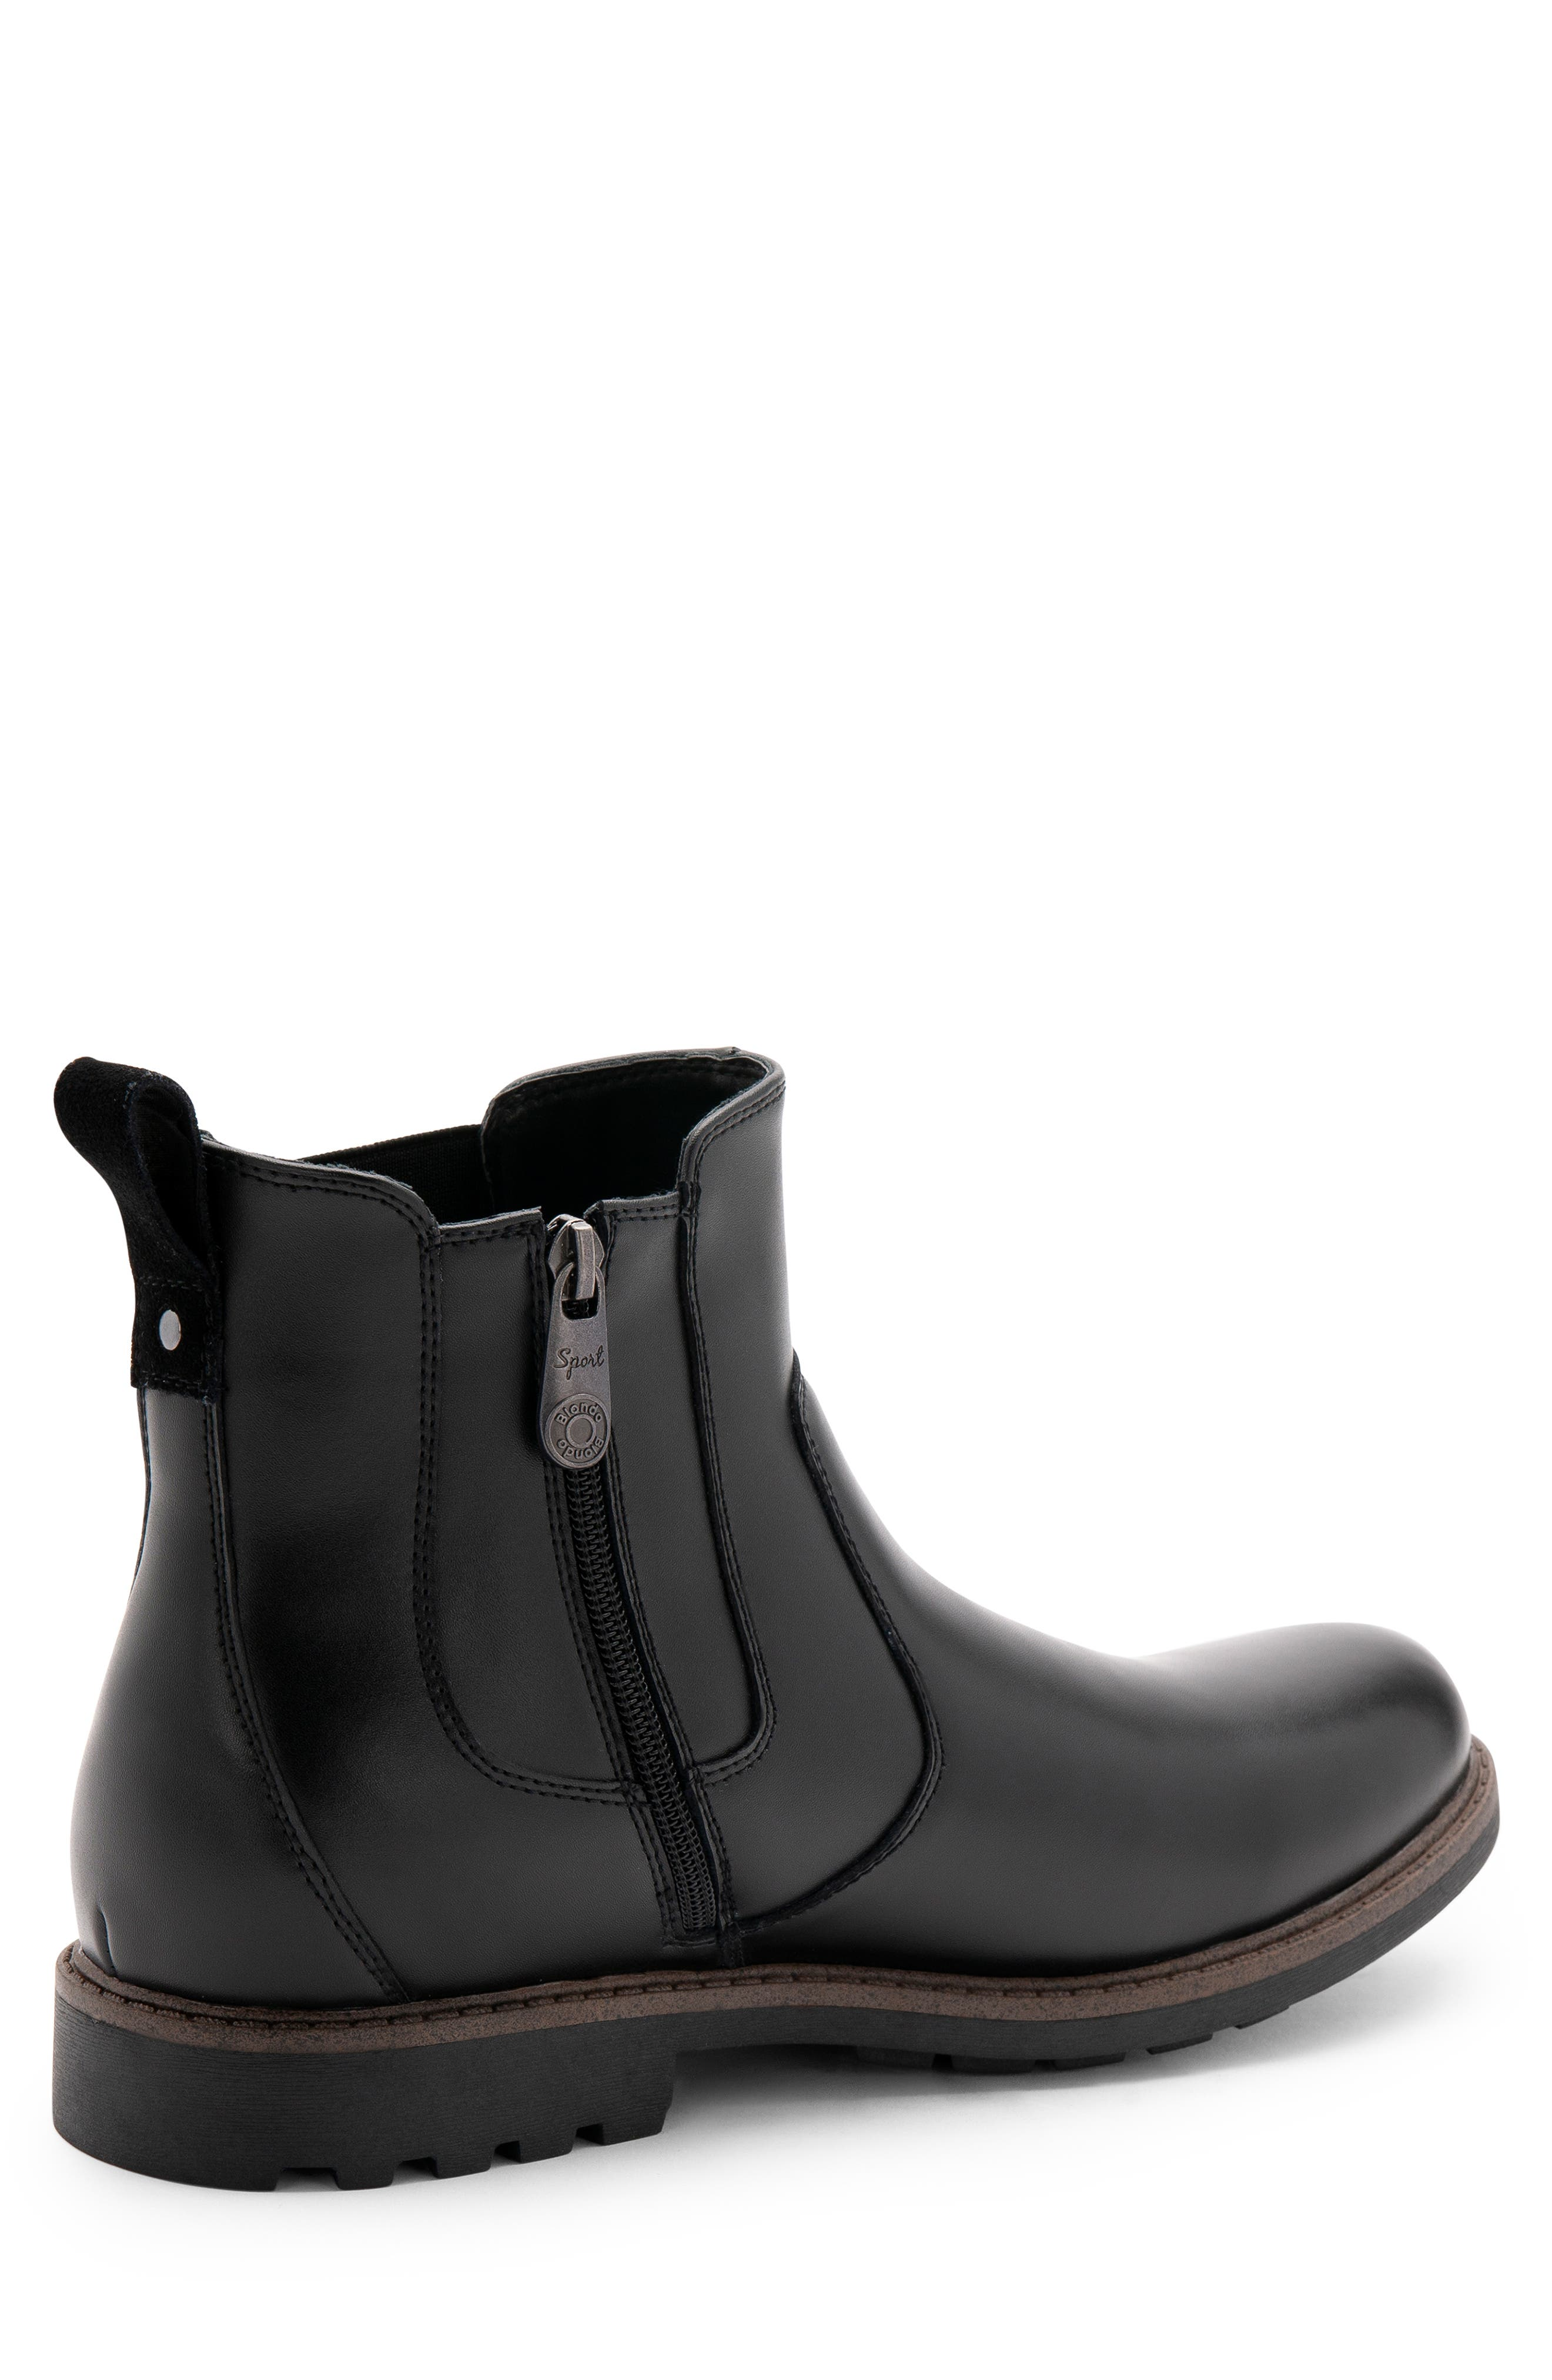 BLONDO, Shadow Waterproof Chelsea Boot, Alternate thumbnail 8, color, BLACK LEATHER